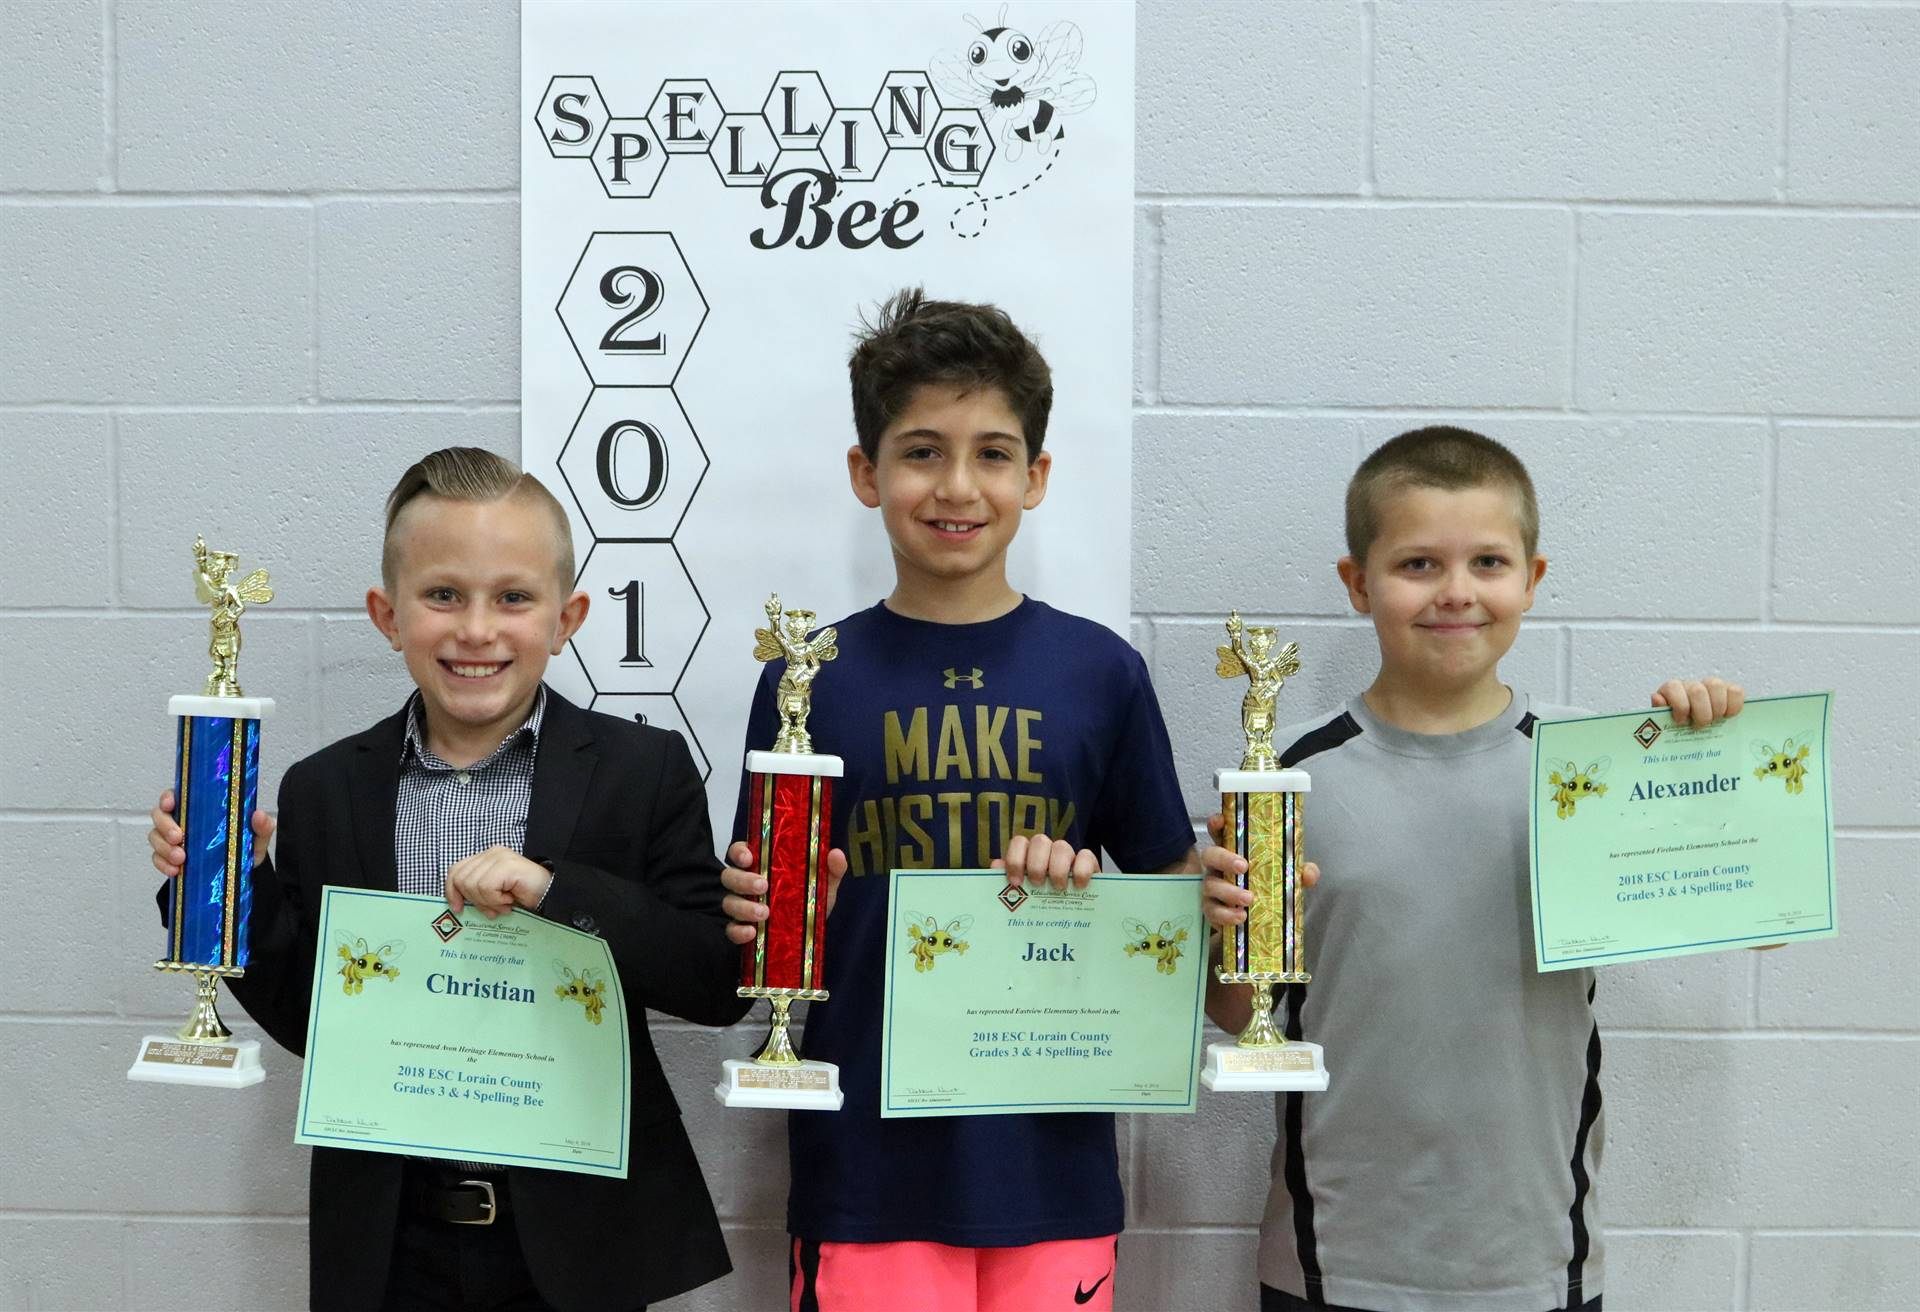 1st, 2nd, 3rd place winners for grades 3-4